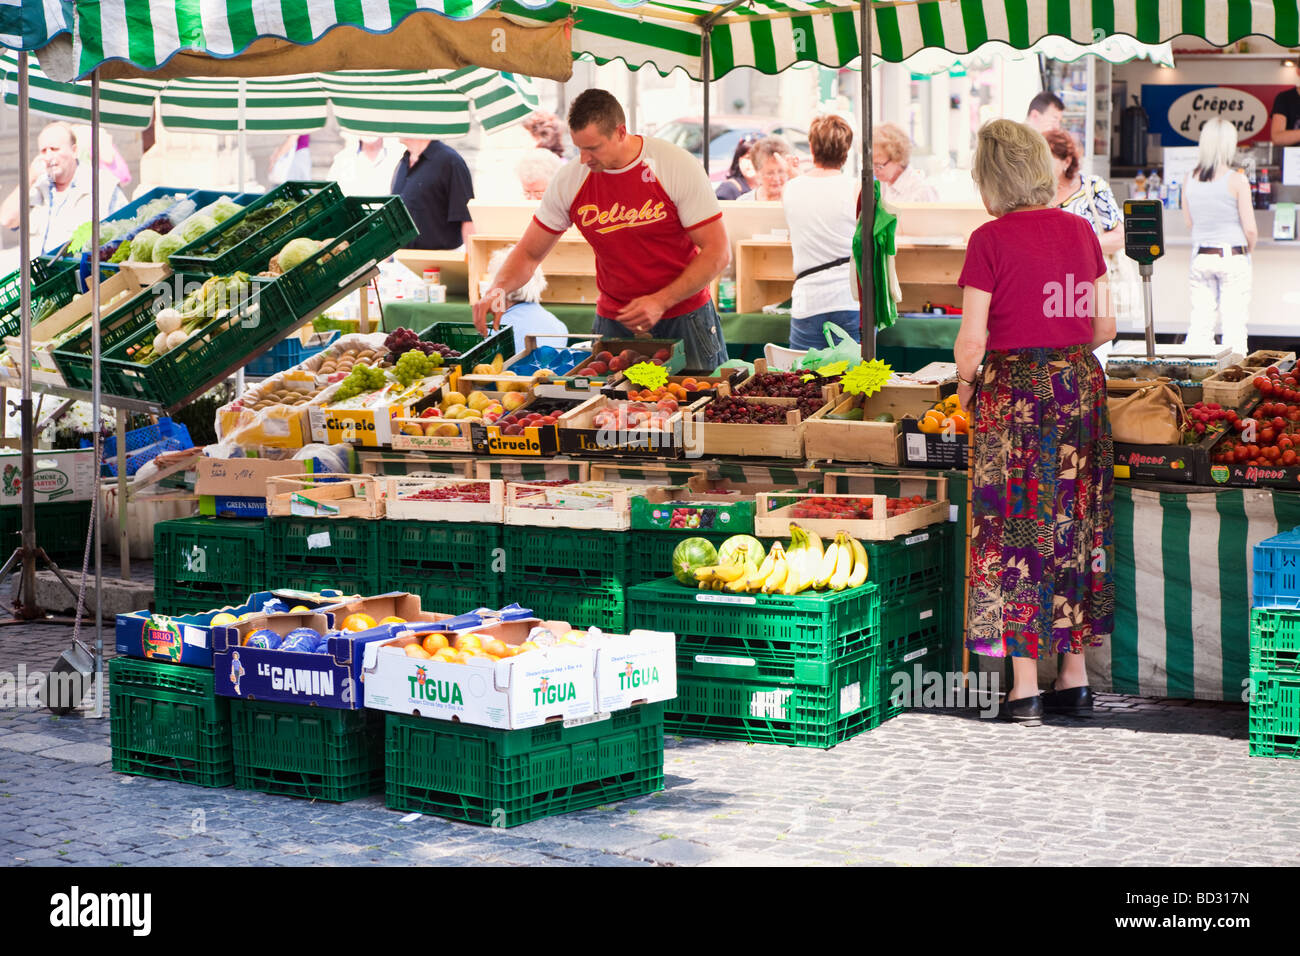 Market stall selling fruit and vegetables in Weimar, Germany, Europe - Stock Image